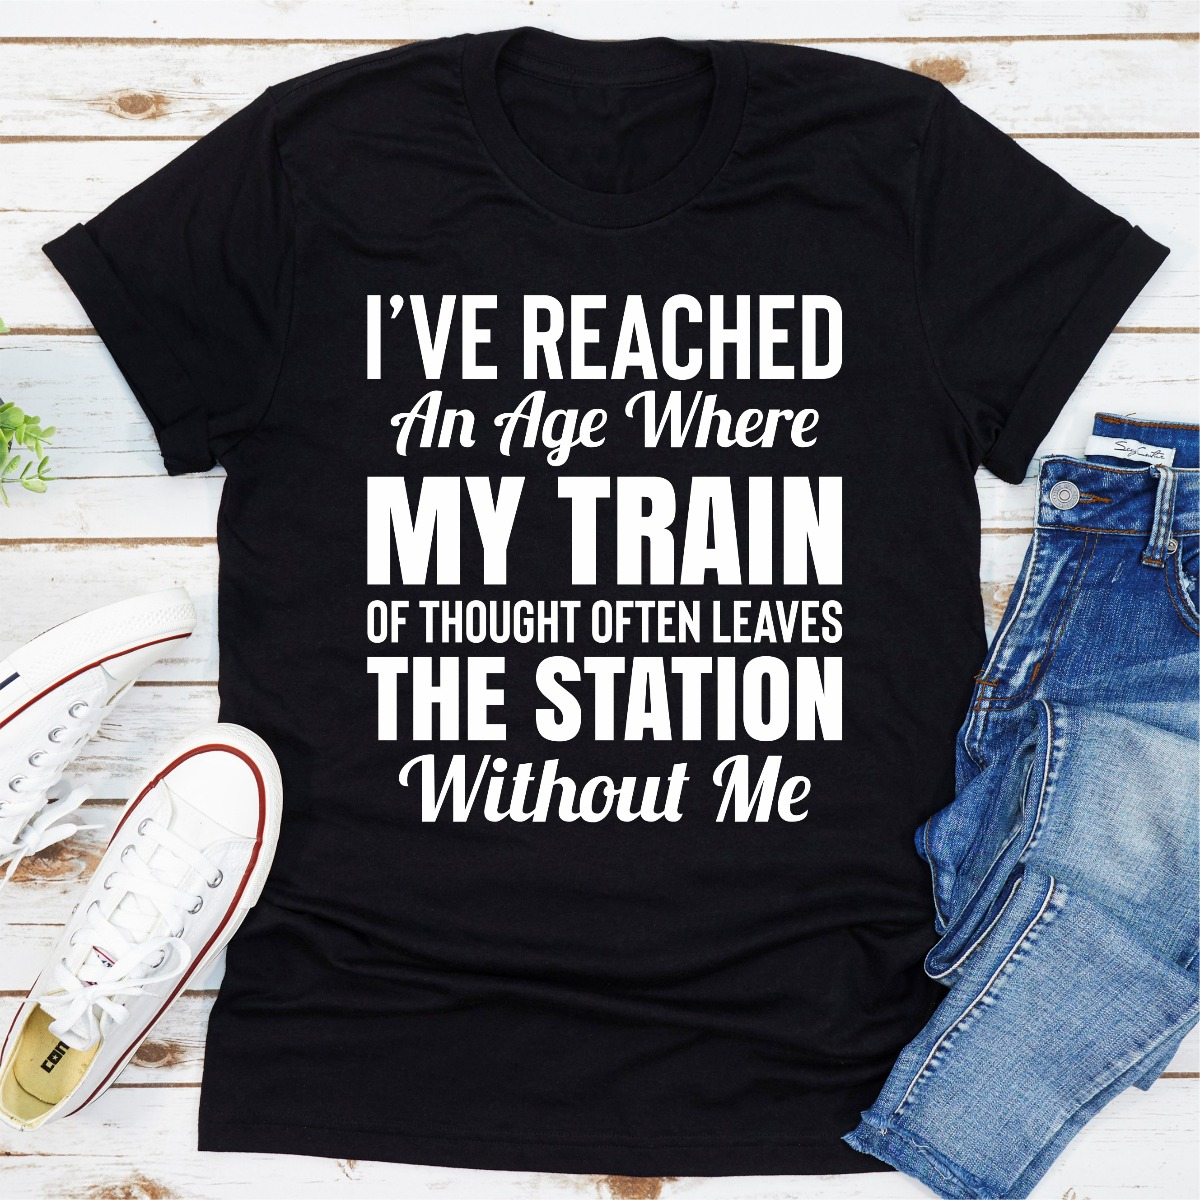 I've Reached An Age Where My Train Of Thought Often Leaves The Station Without Me (Black / S)